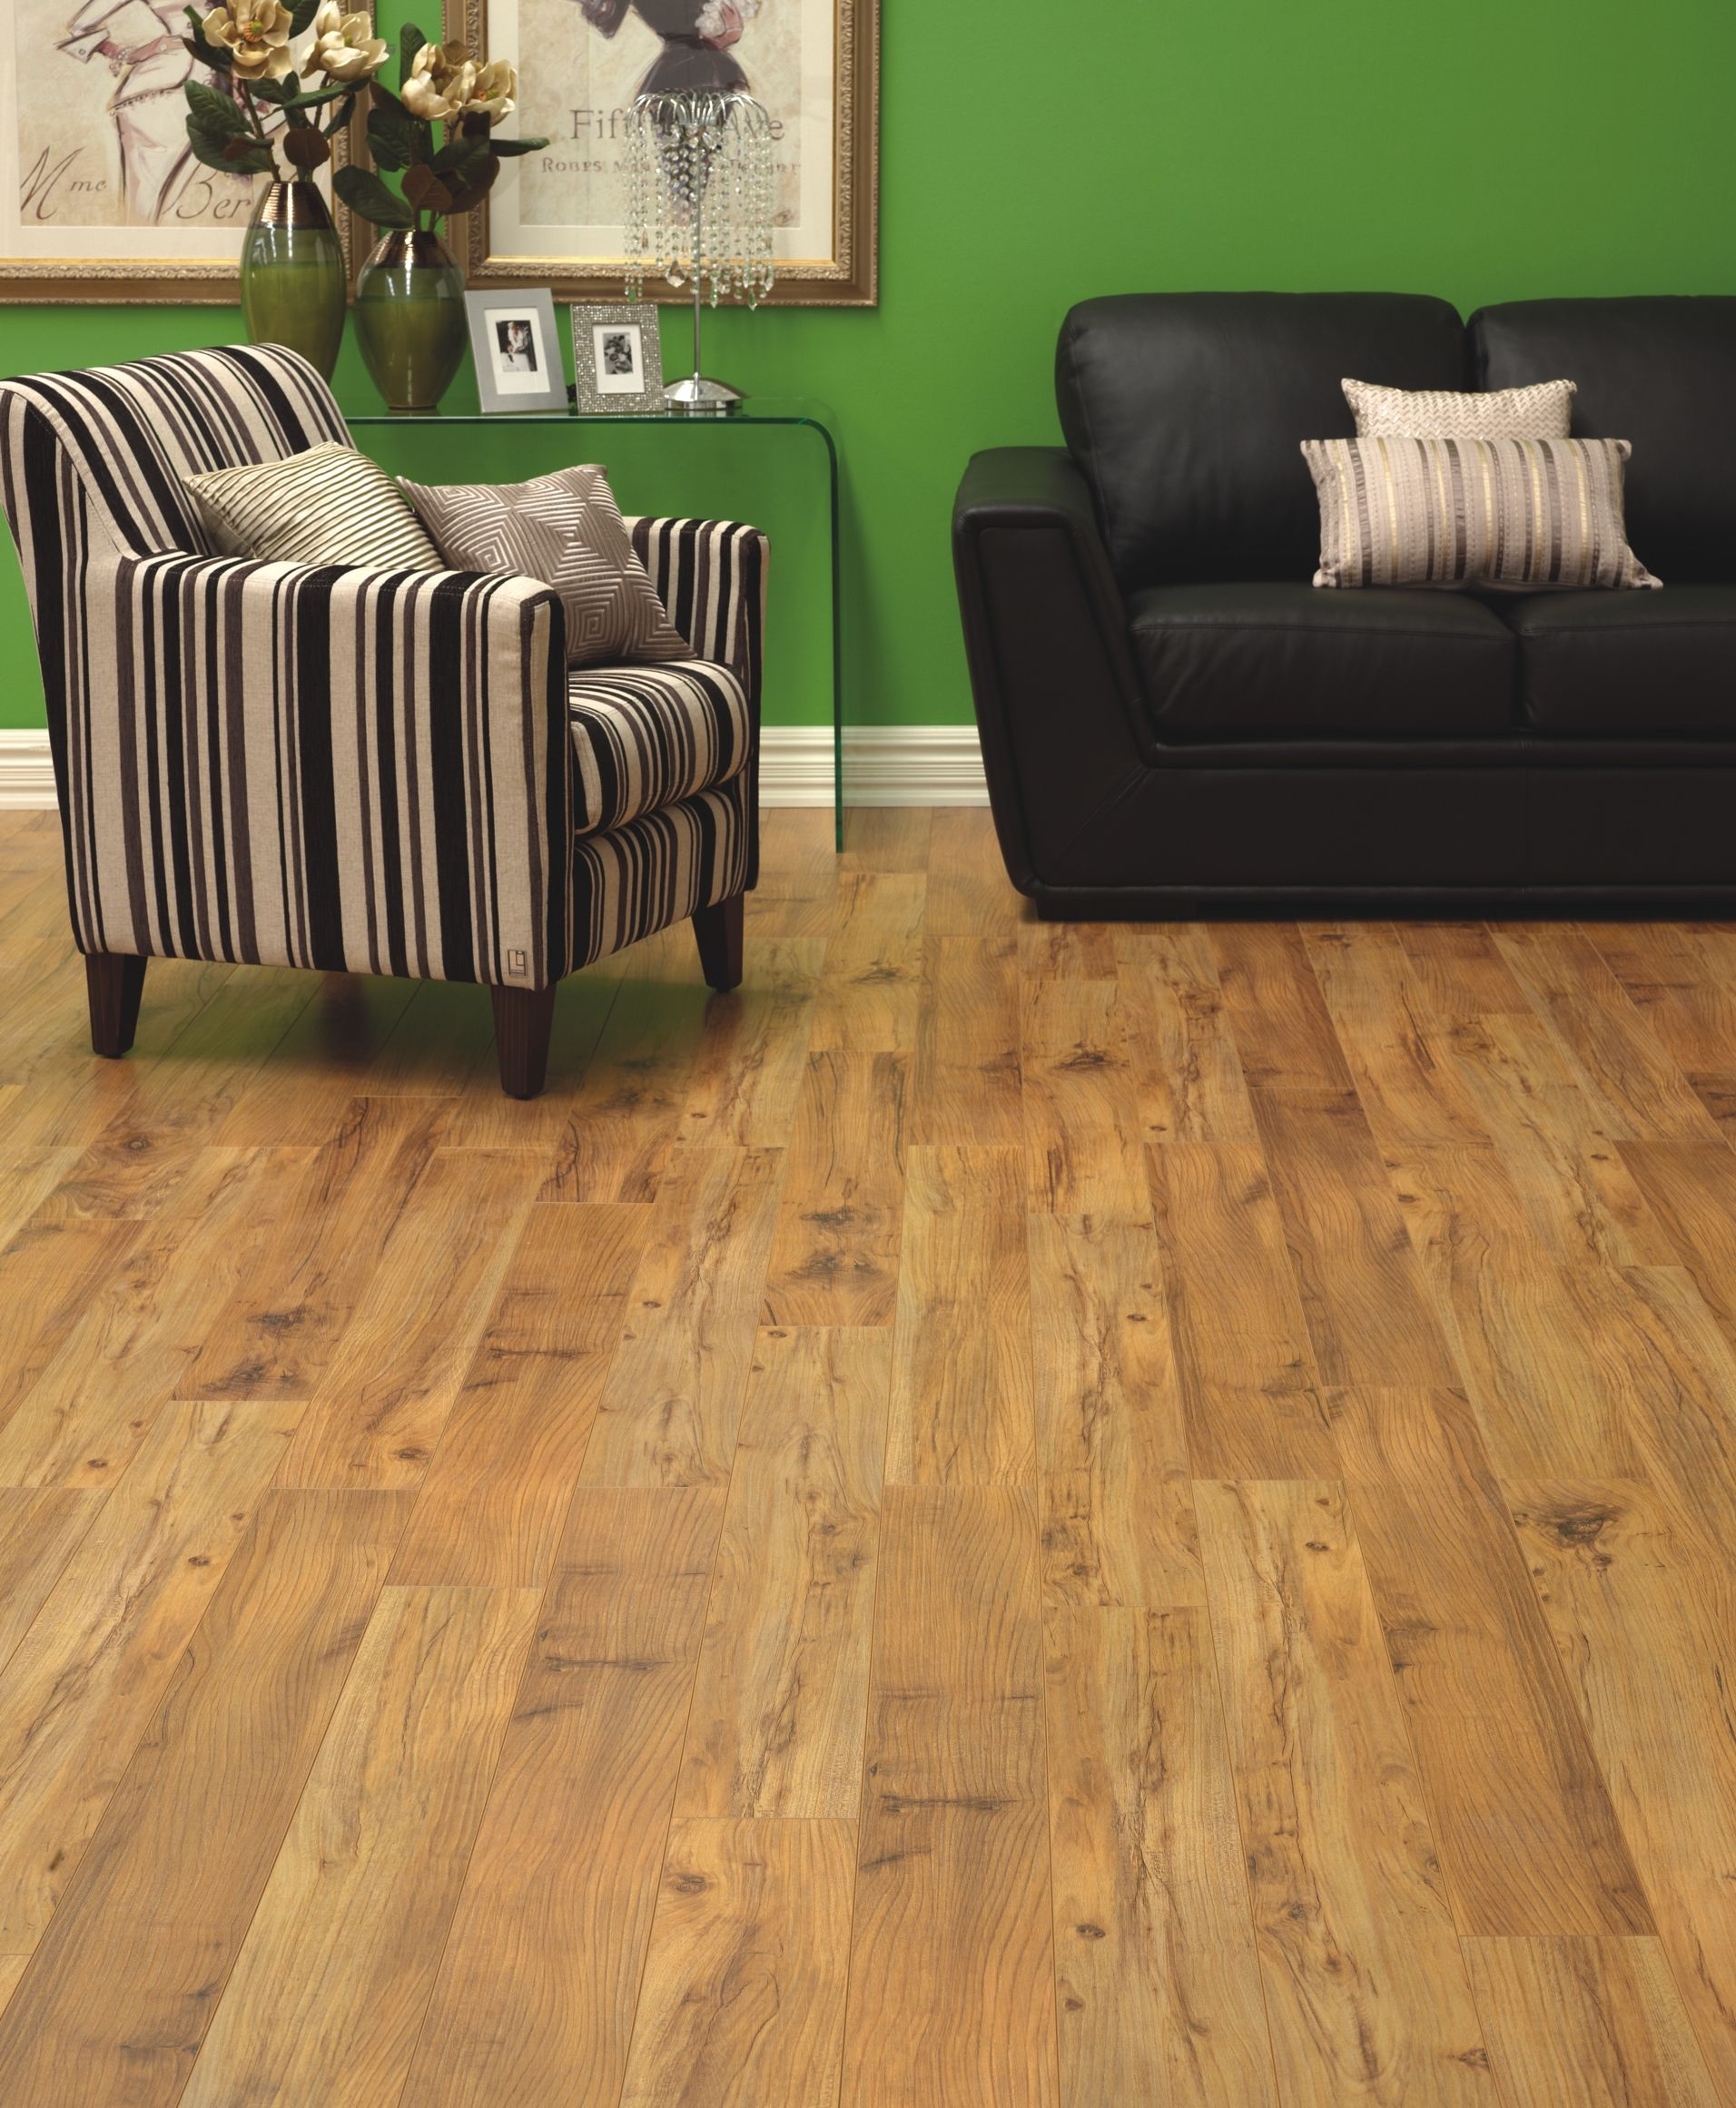 How Is Laminate Flooring Made fastlock 'michigan pine' laminate flooring - an elegant and